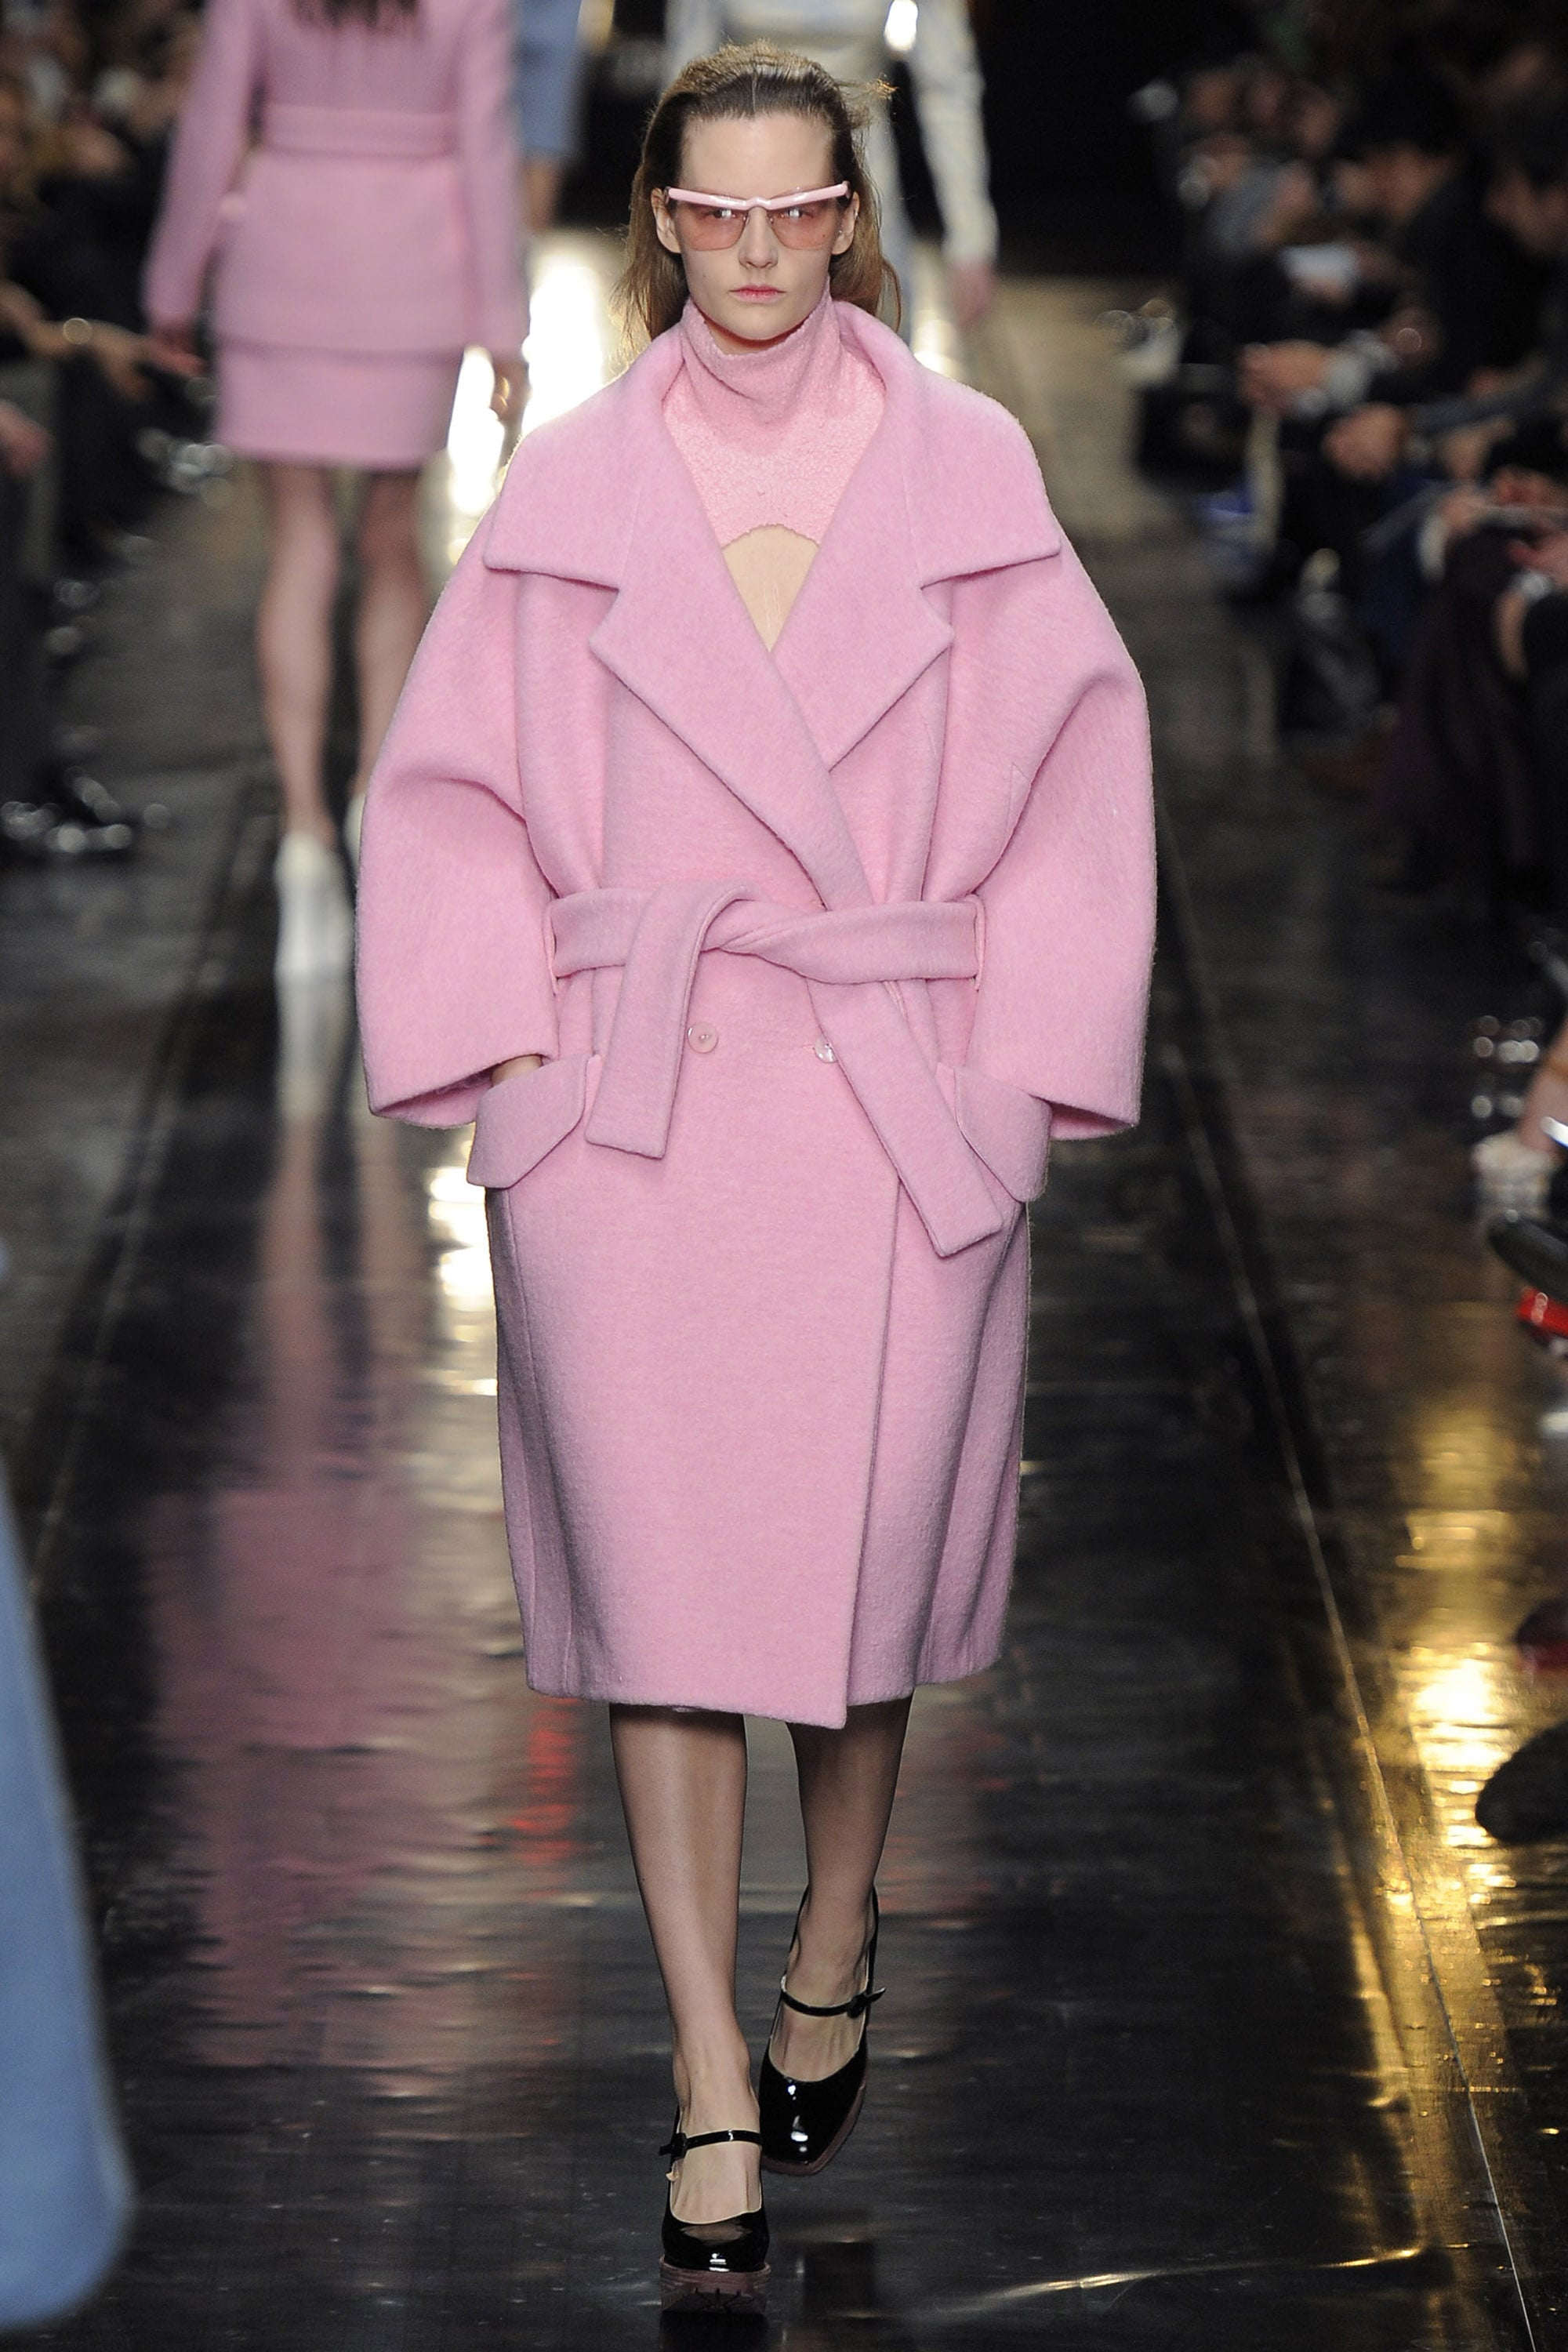 The Trend: Pink